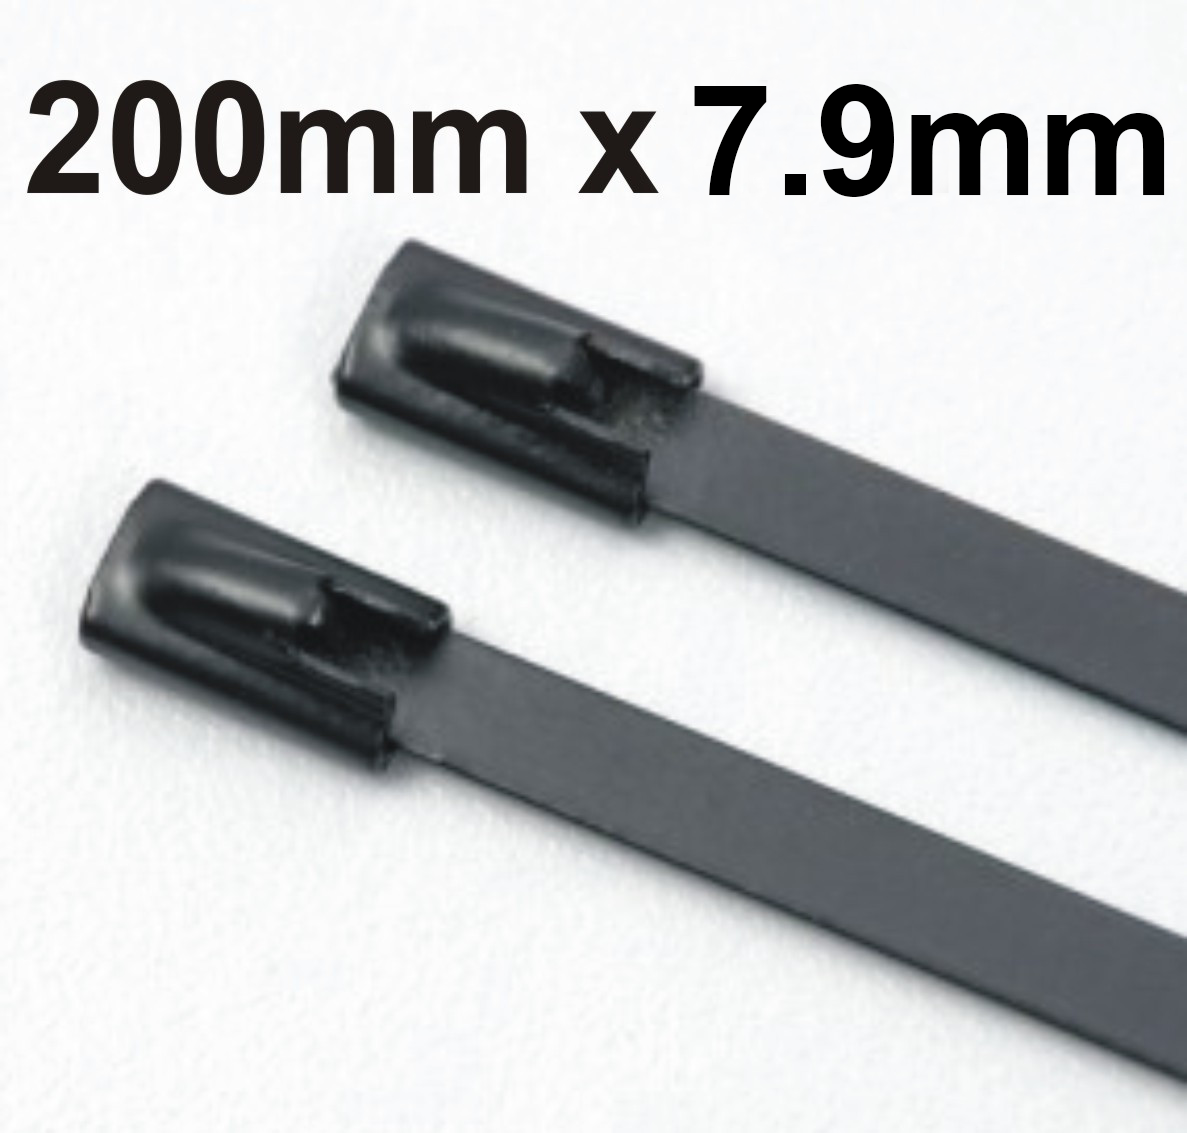 Stainless Steel Cable Ties Coated 200mm x 7.9mm